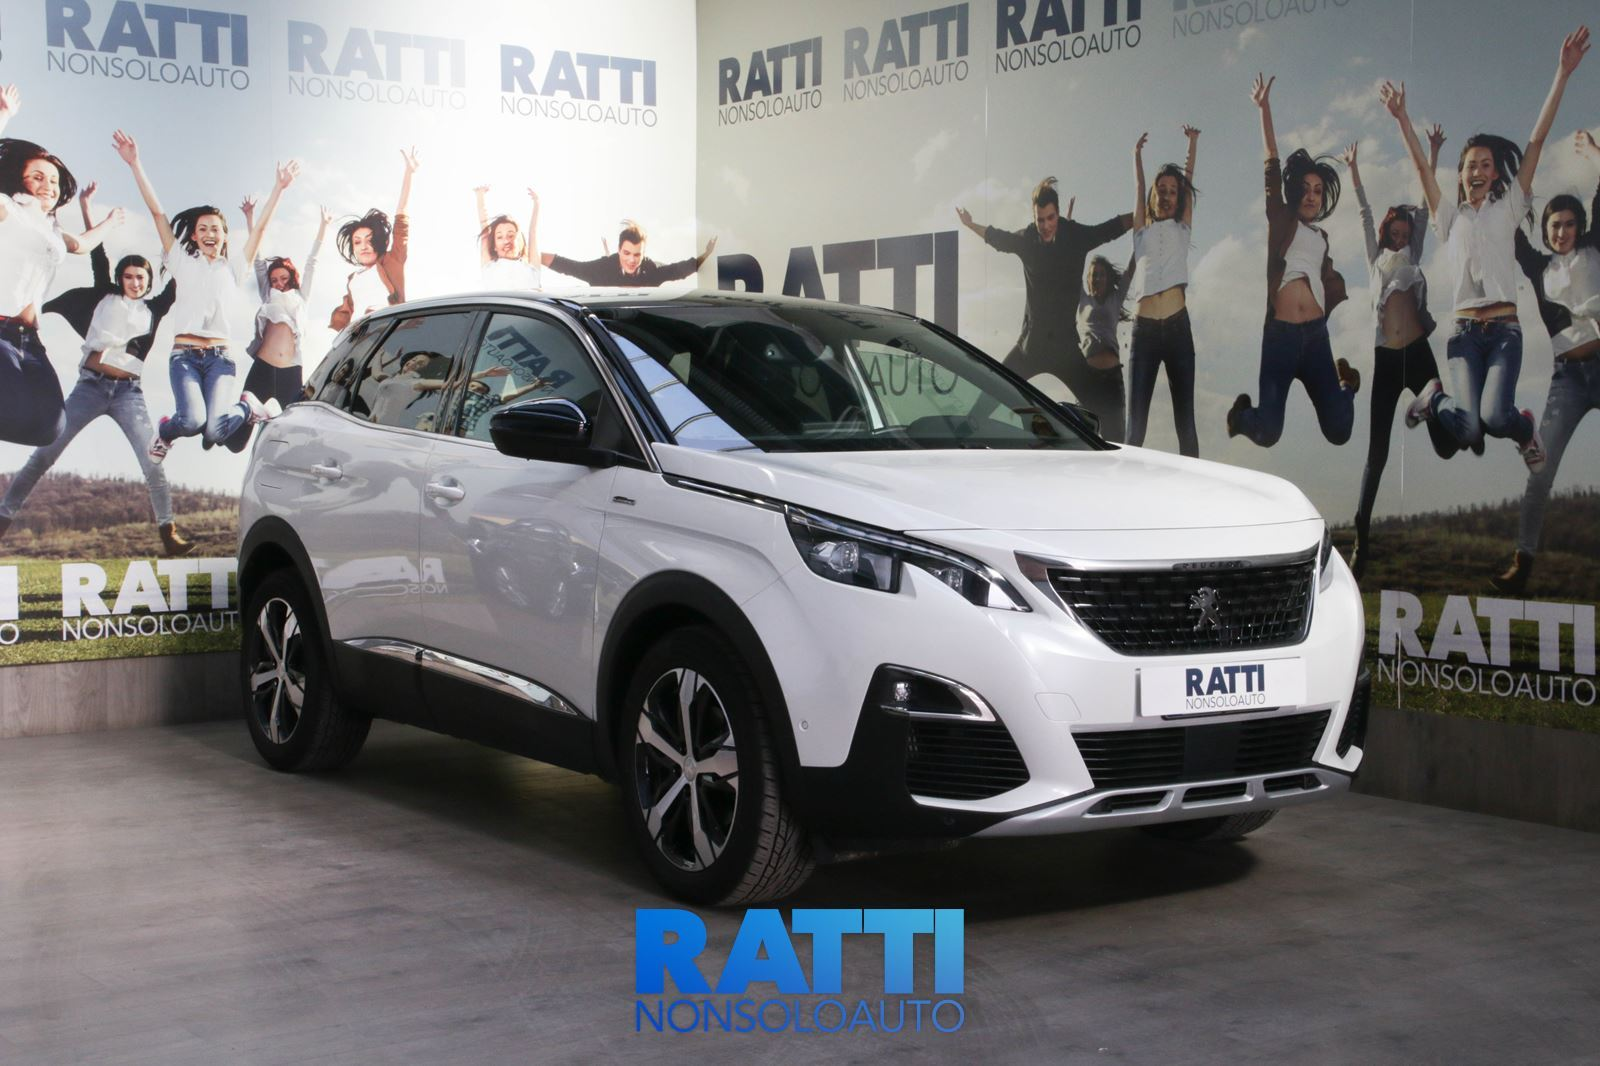 PEUGEOT 3008 BlueHDi 1.5 130CV S&S GT Line + Active Safety Brake Bianco Madreperla  cambio Manuale Diesel Aziendale station wagon 5 porte 5 posti EURO 6